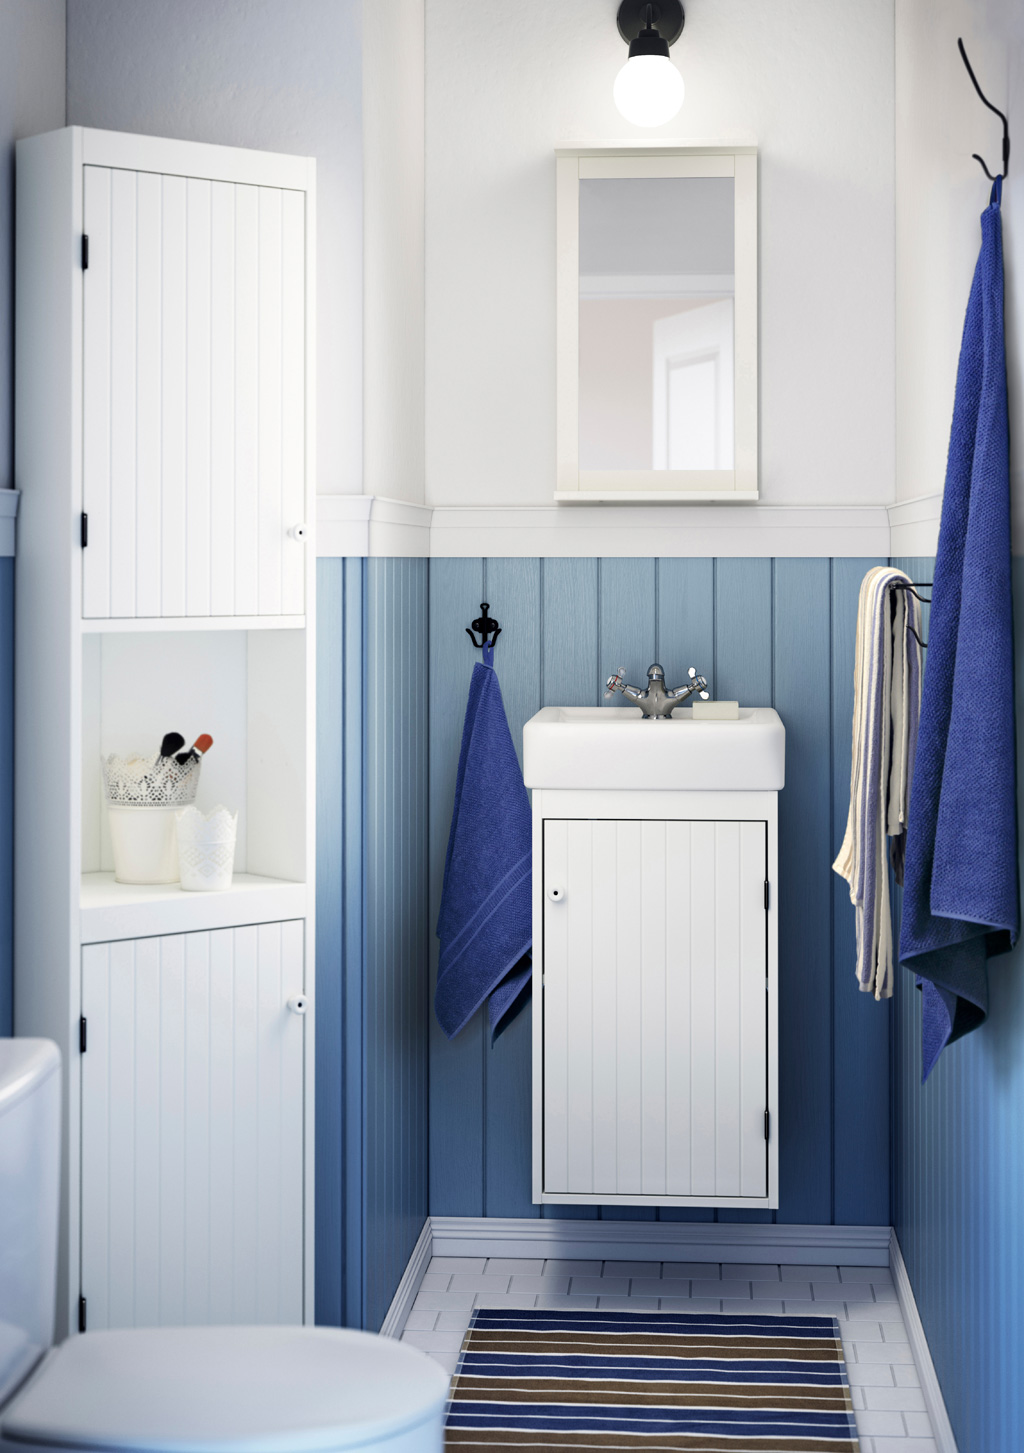 30 Beautiful Small Bathroom Decorating Ideas